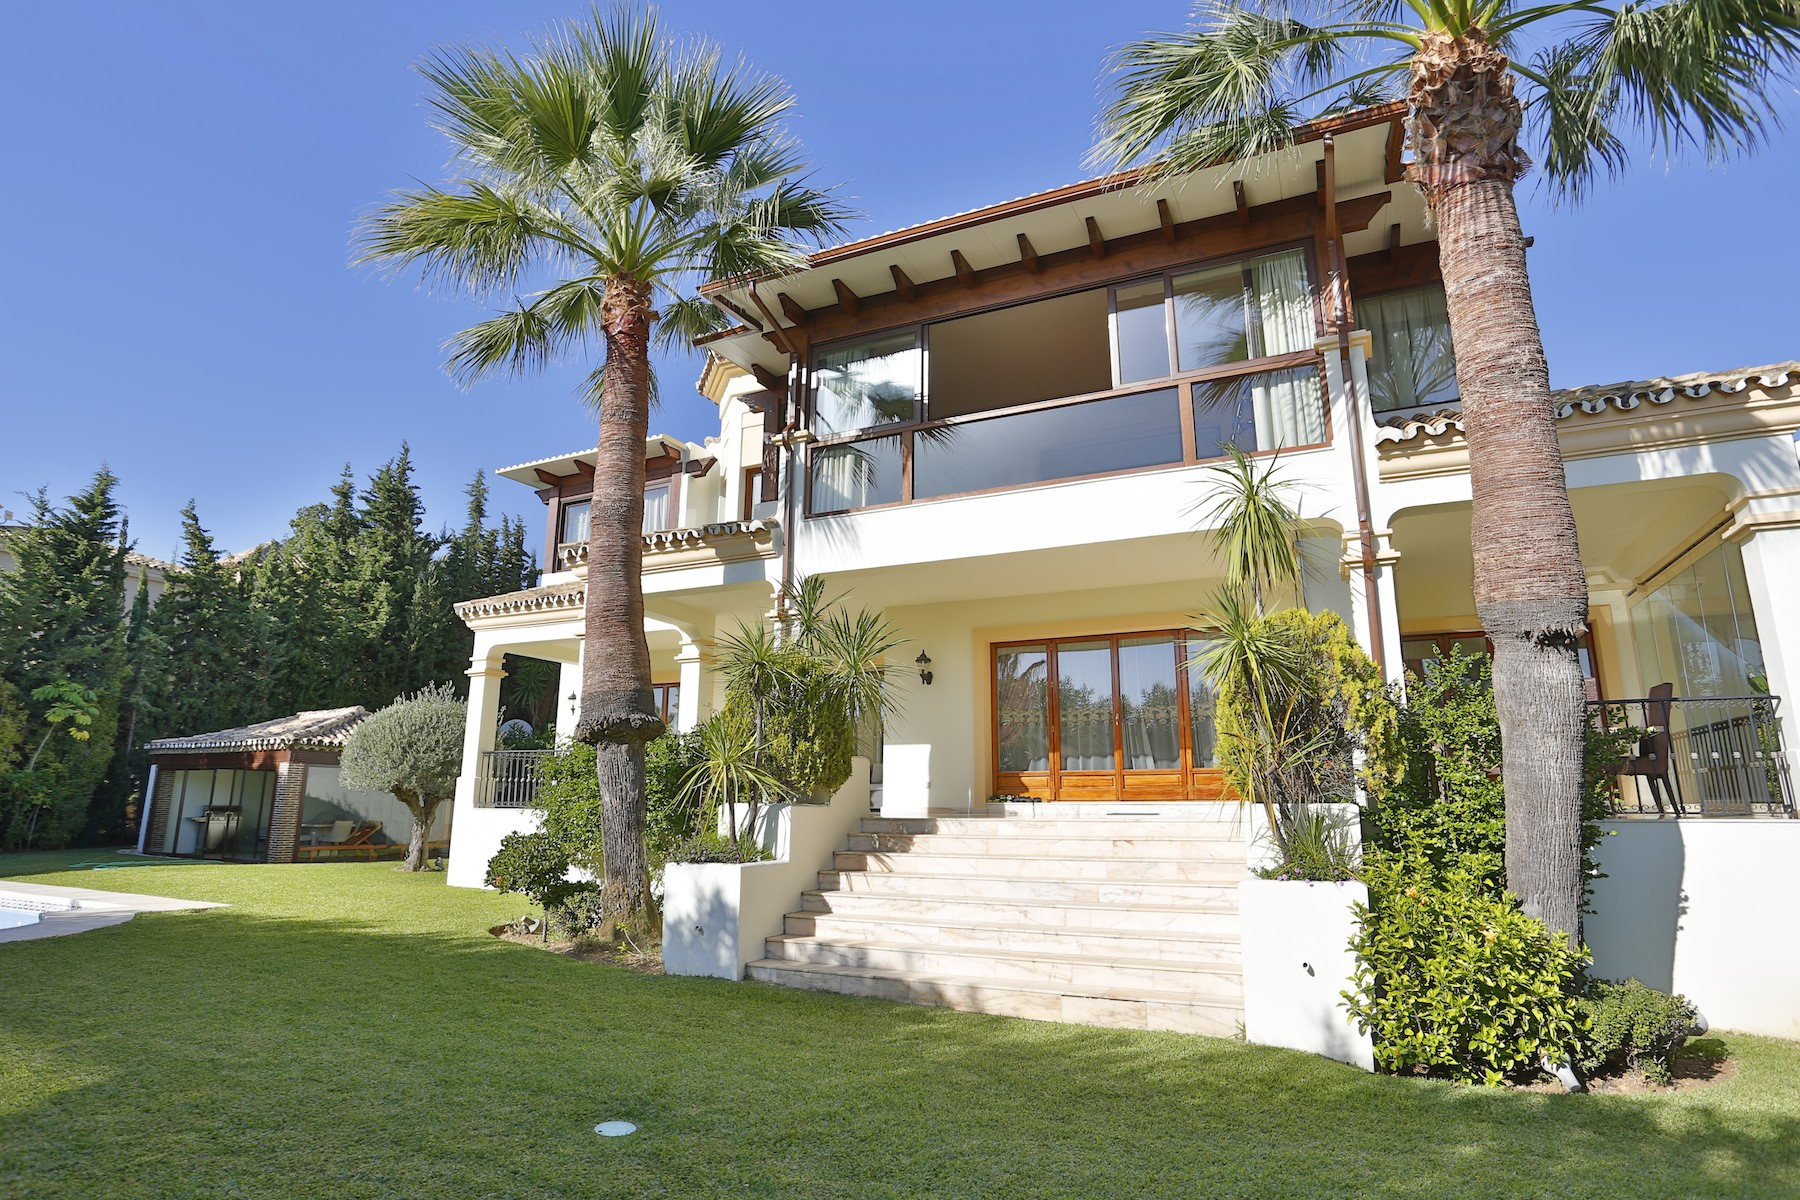 Частный односемейный дом для того Продажа на Elegant villa situated in the best sought after residential area in Marbella Sierra Blanca Marbella, Costa Del Sol, 29600 Испания